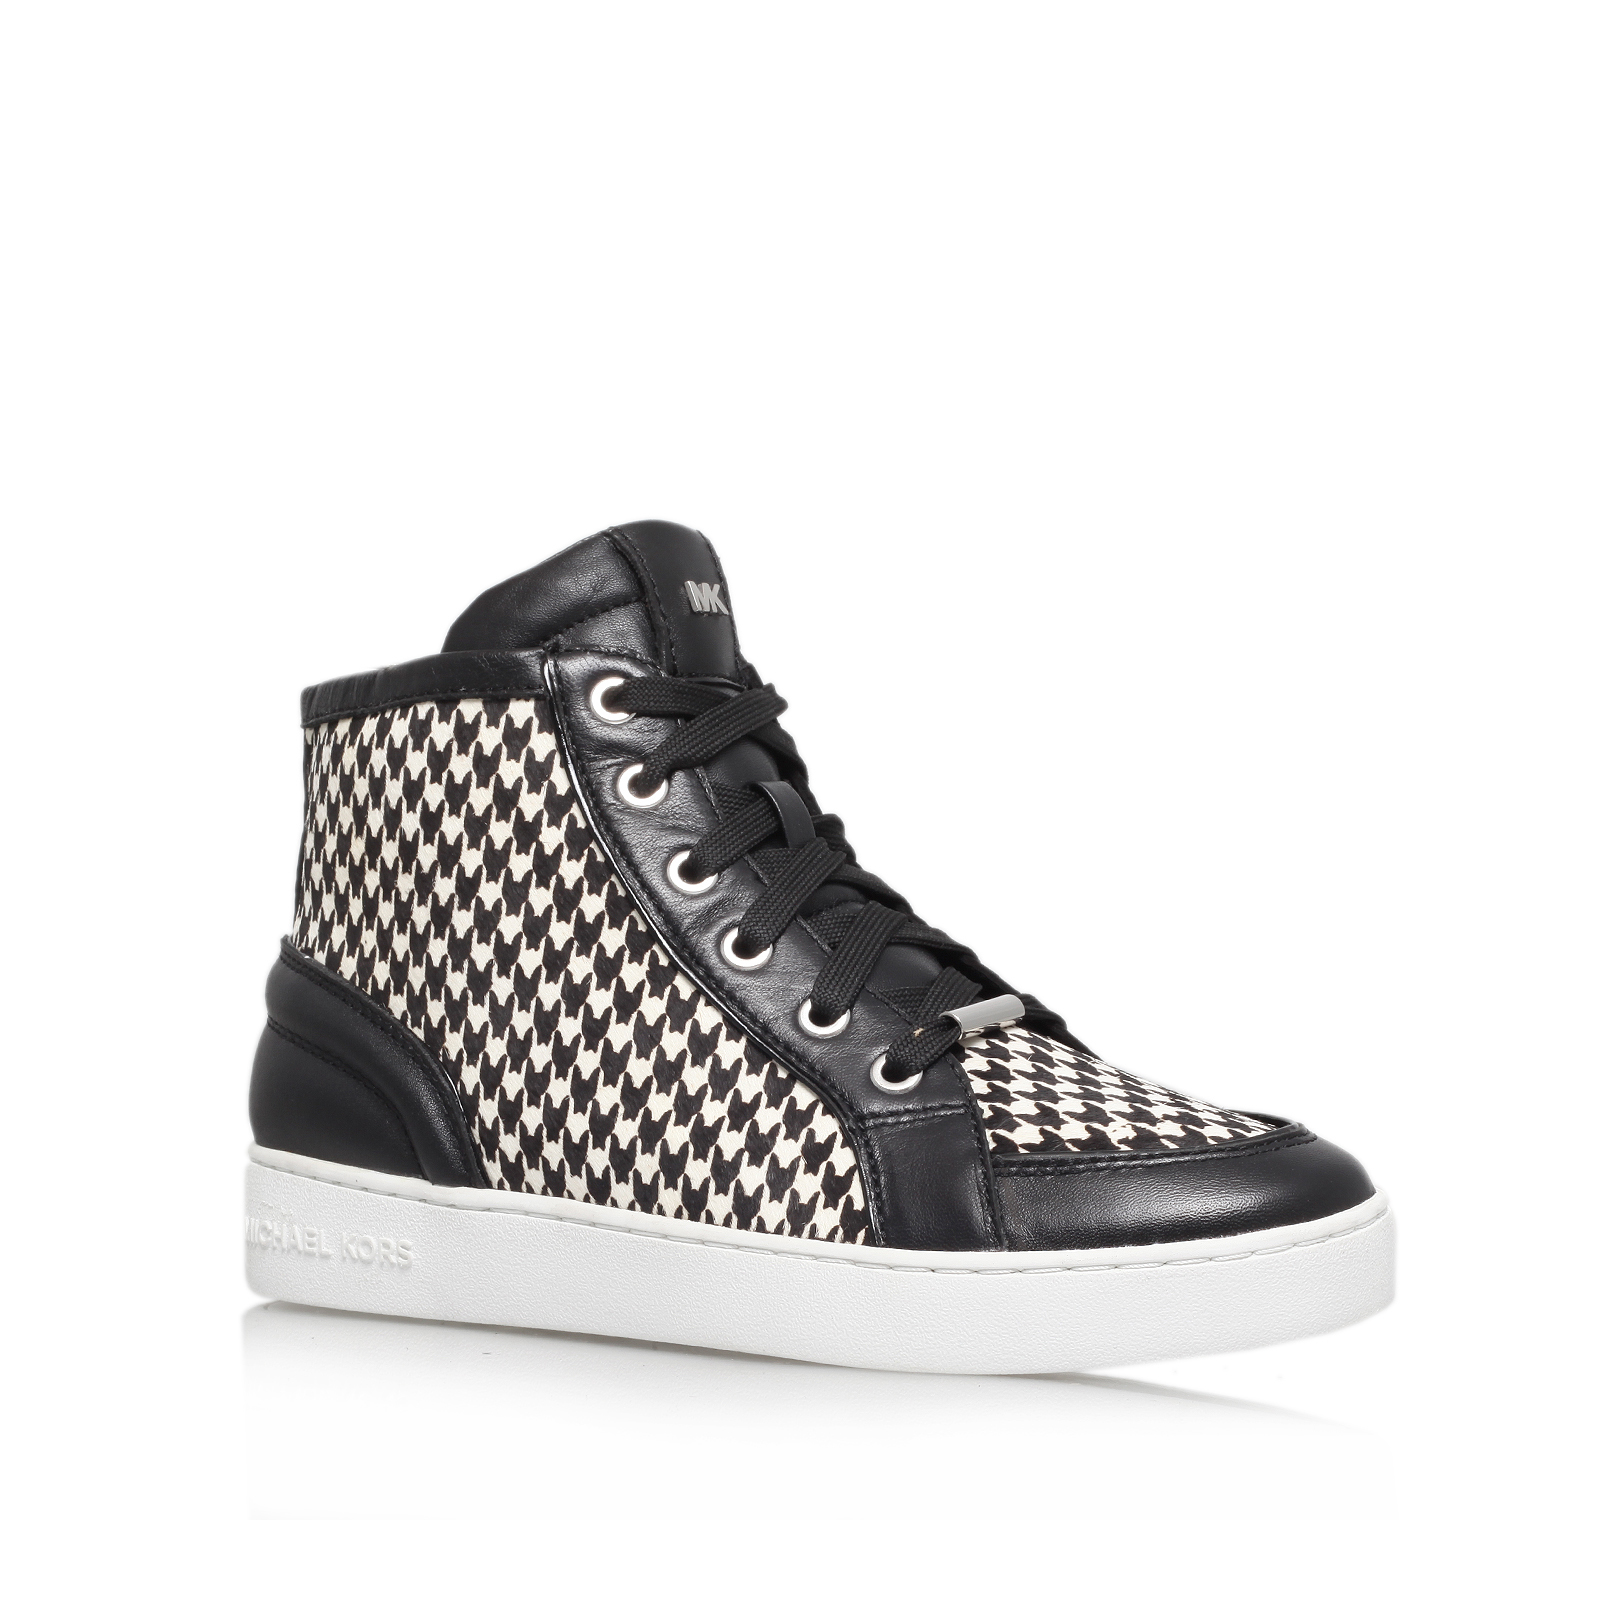 KEATON HIGH TOP